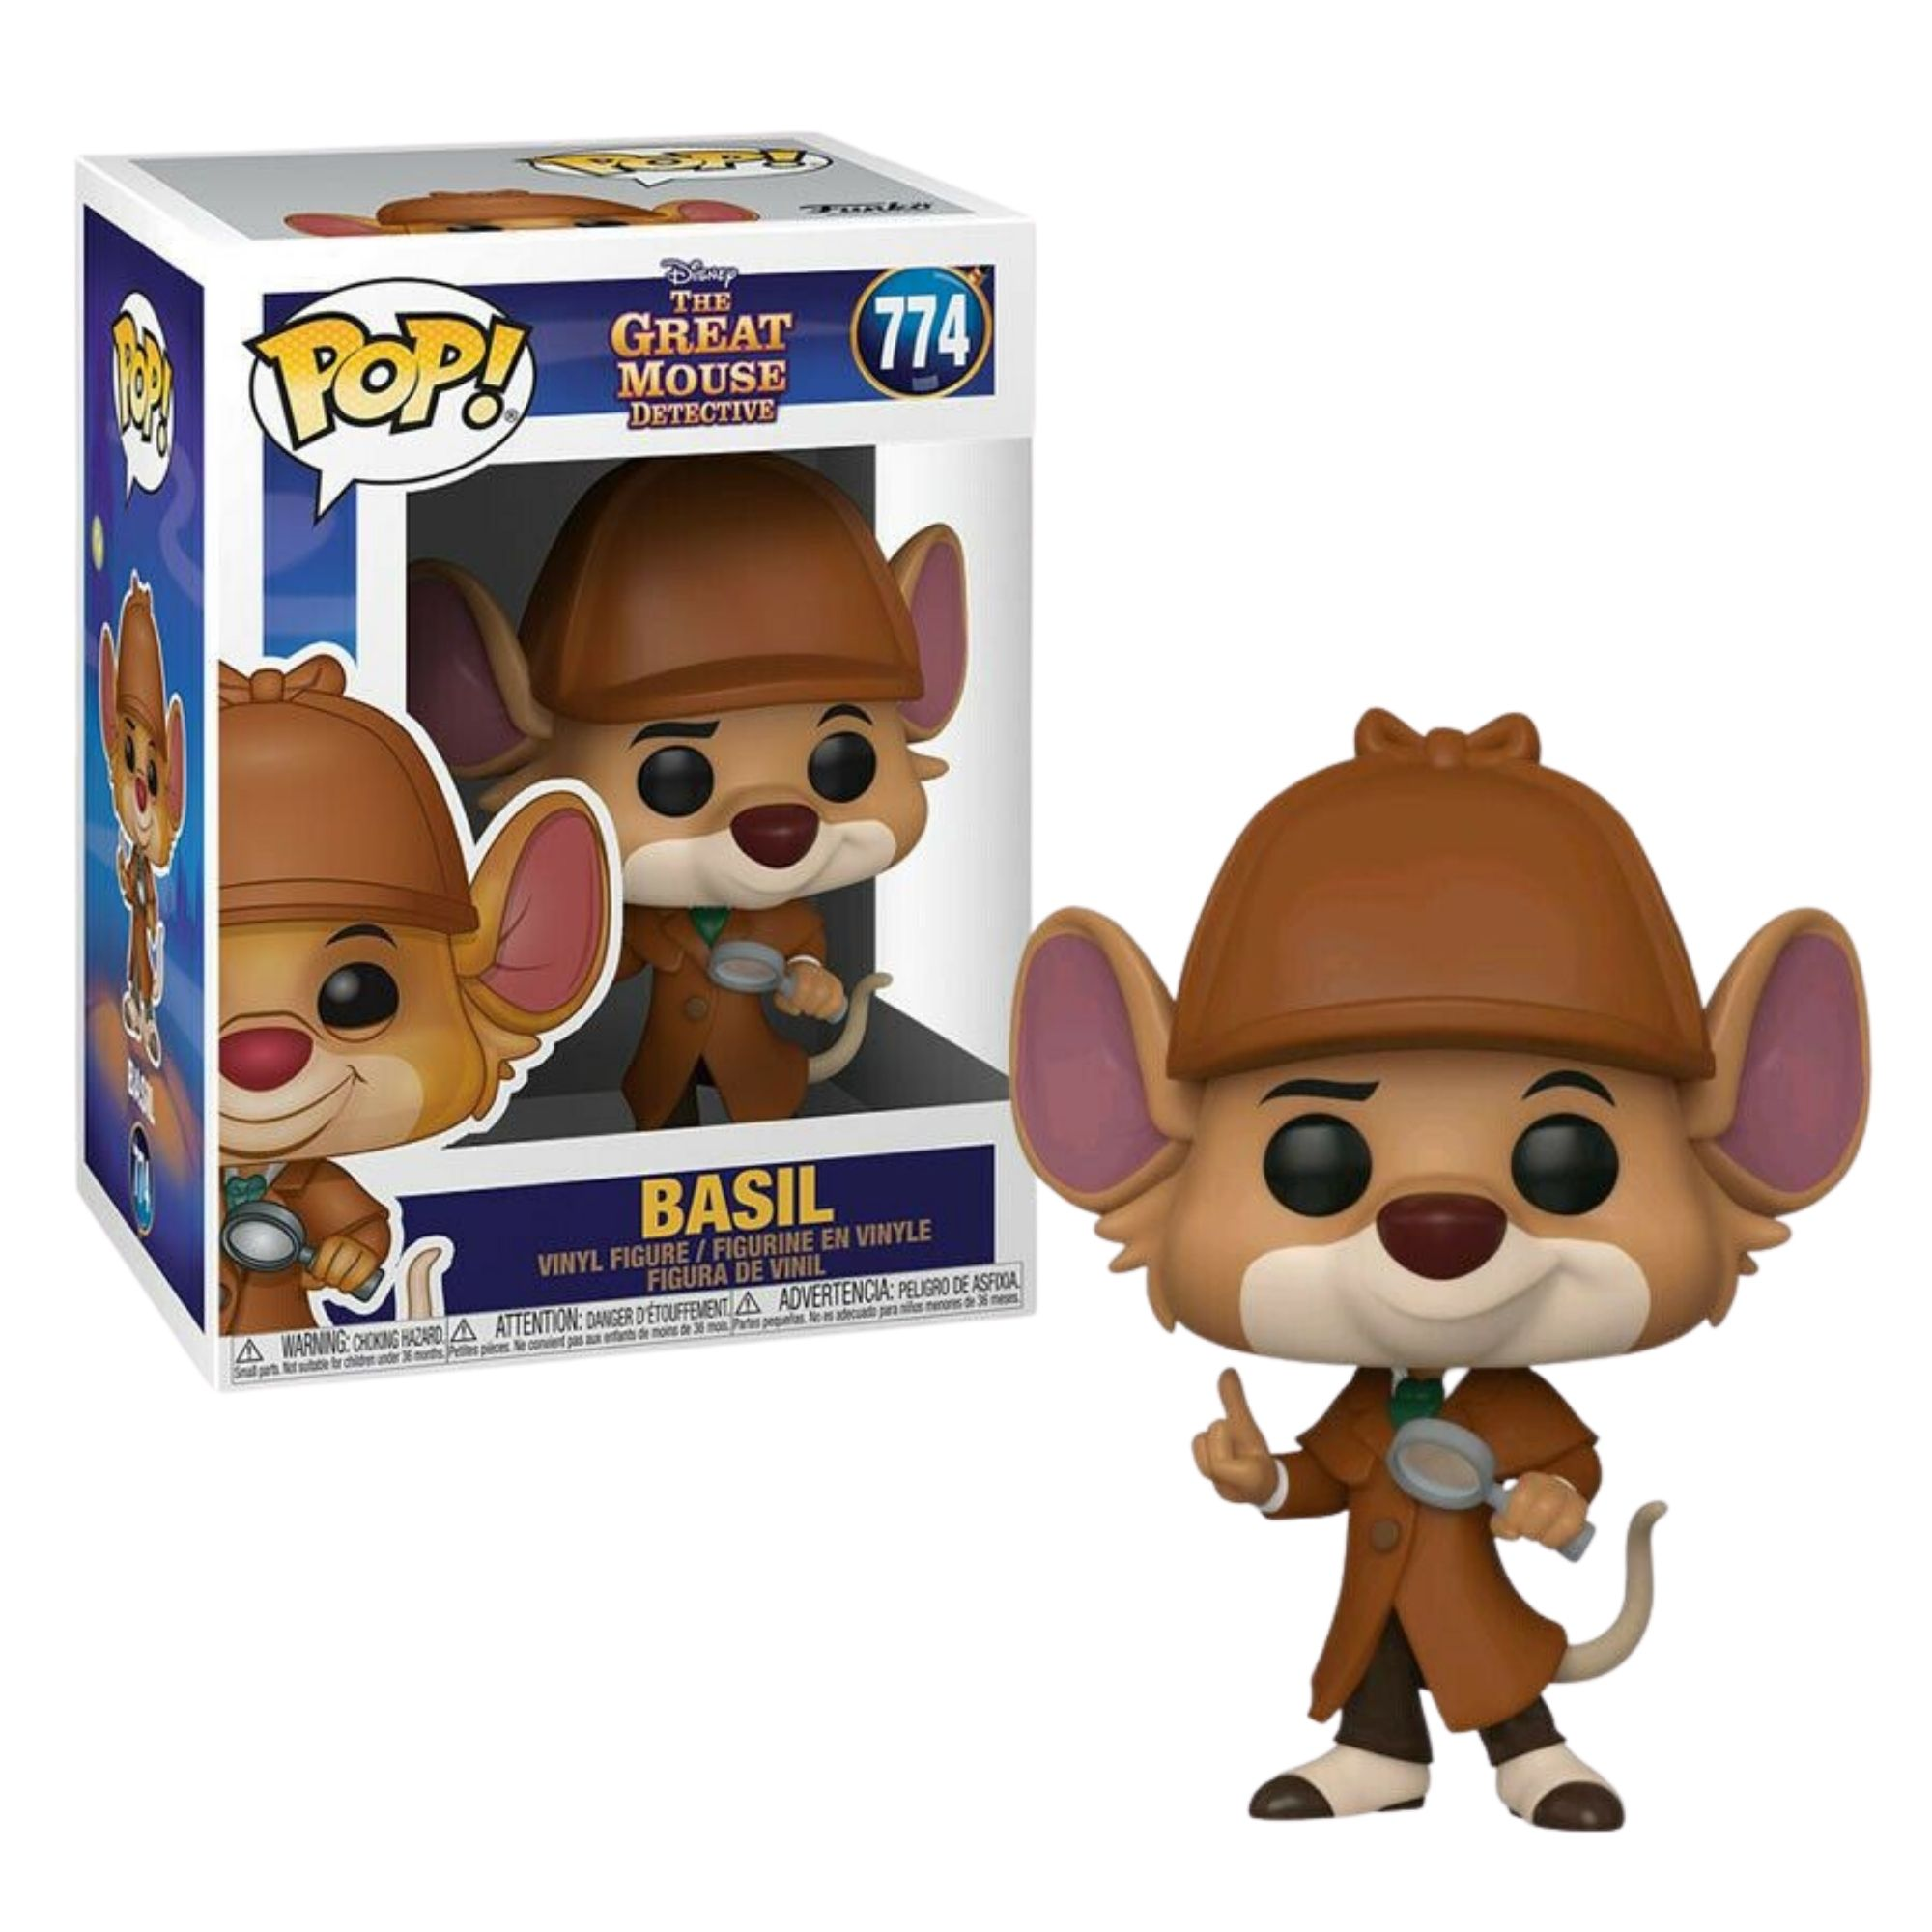 Funko Pop Disney The Great Mouse Detective Basil #774  - Game Land Brinquedos